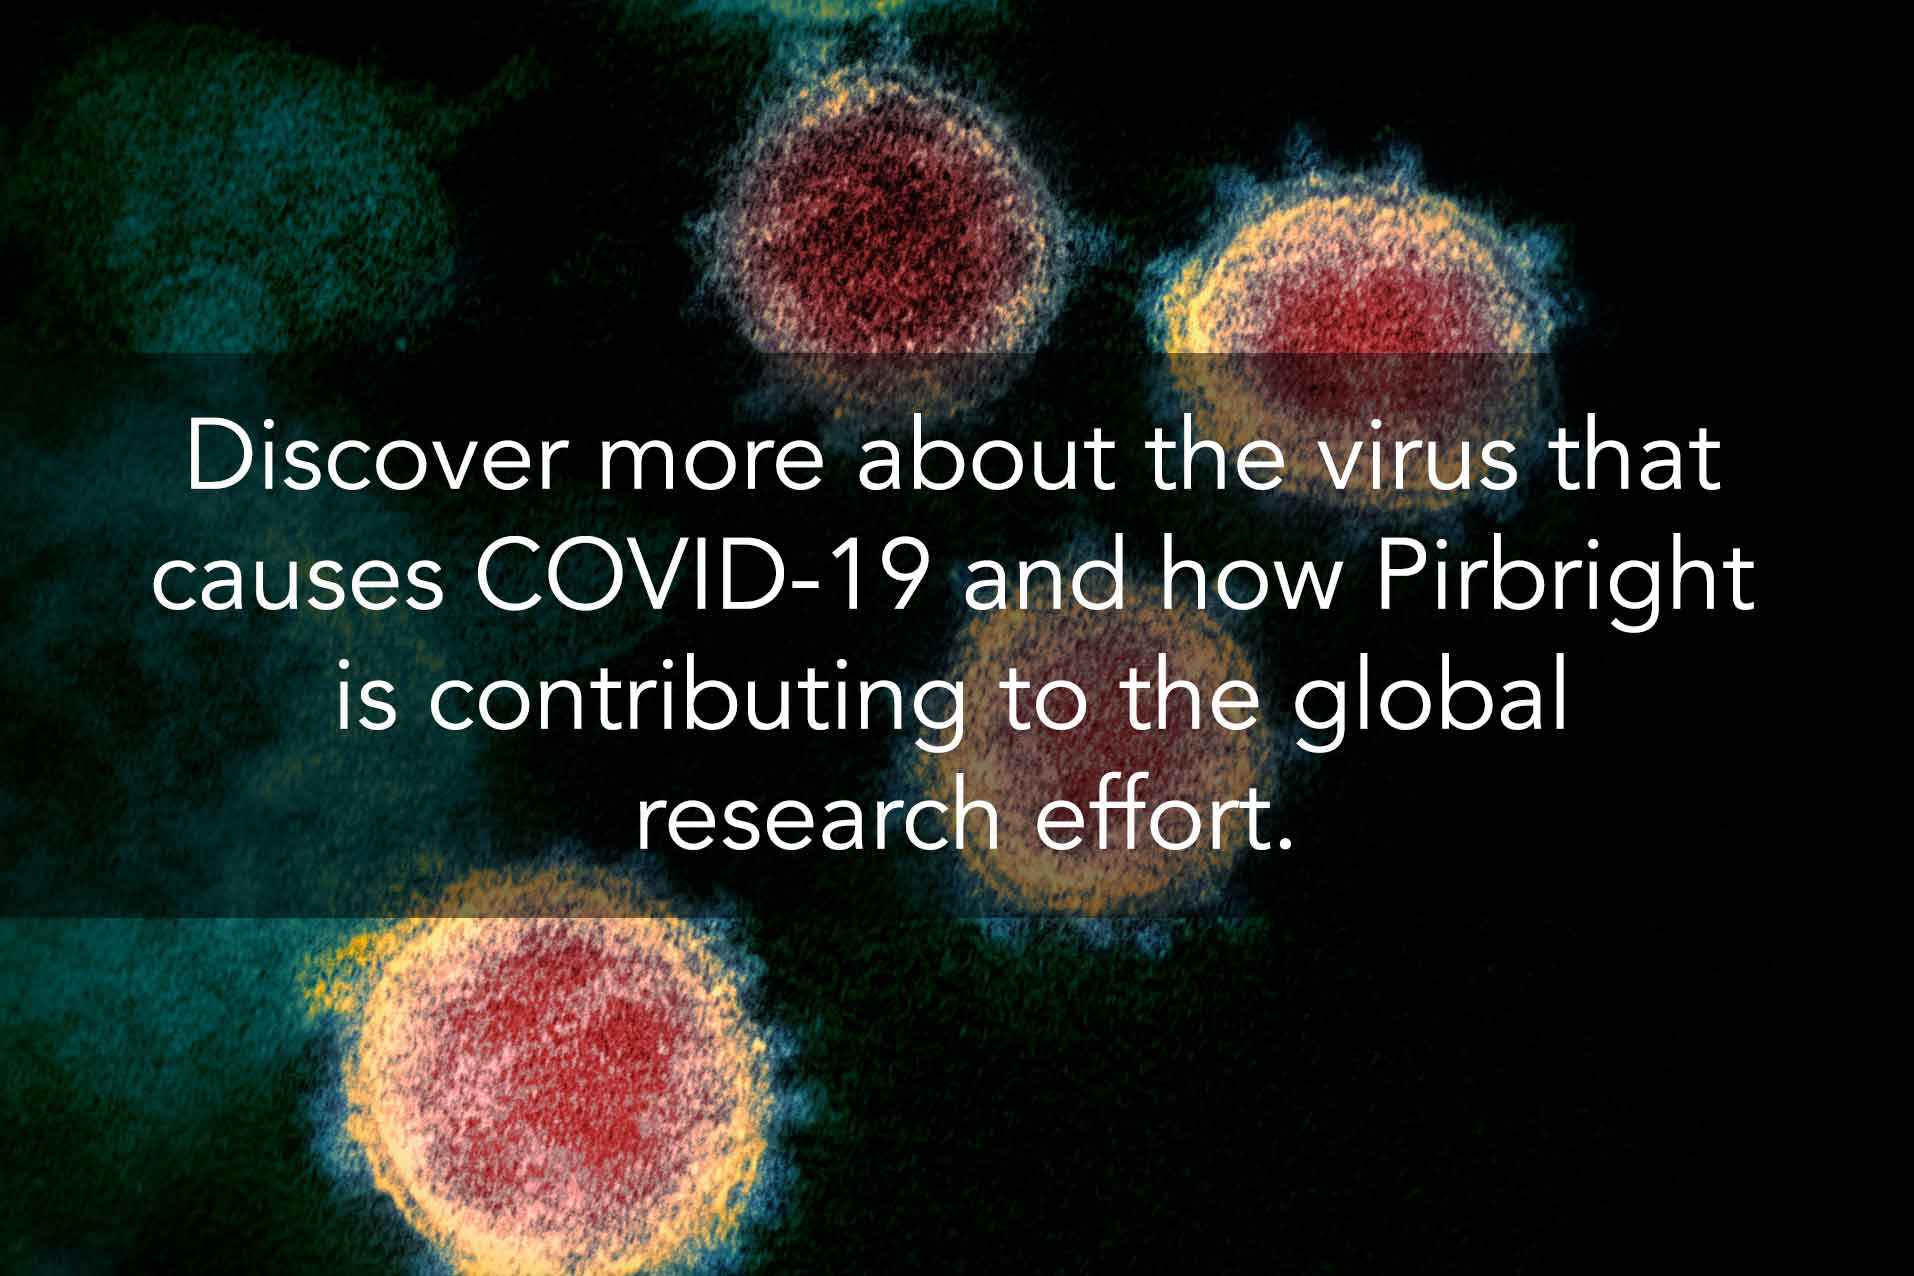 covid 19 sars-cov-2 page link - Discover more about the virus that  causes COVID-19 and how Pirbright  is contributing to the global  research effort.